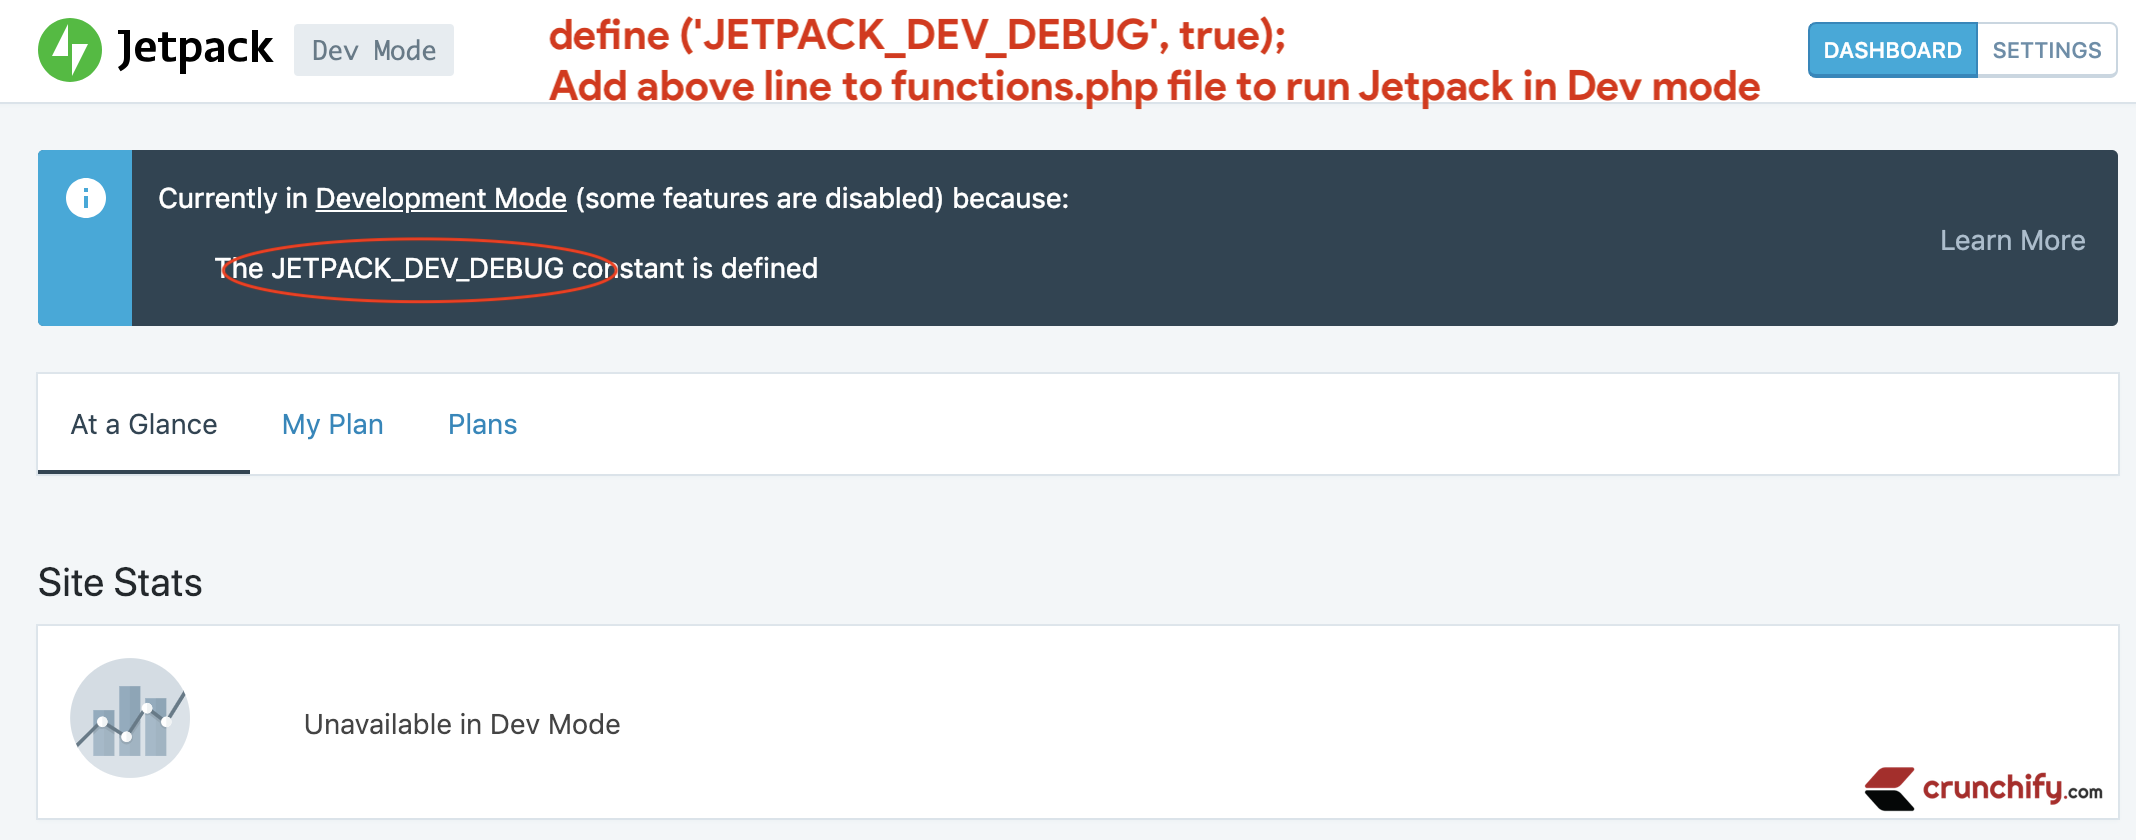 Jetpack in Development mode - Crunchify Tips